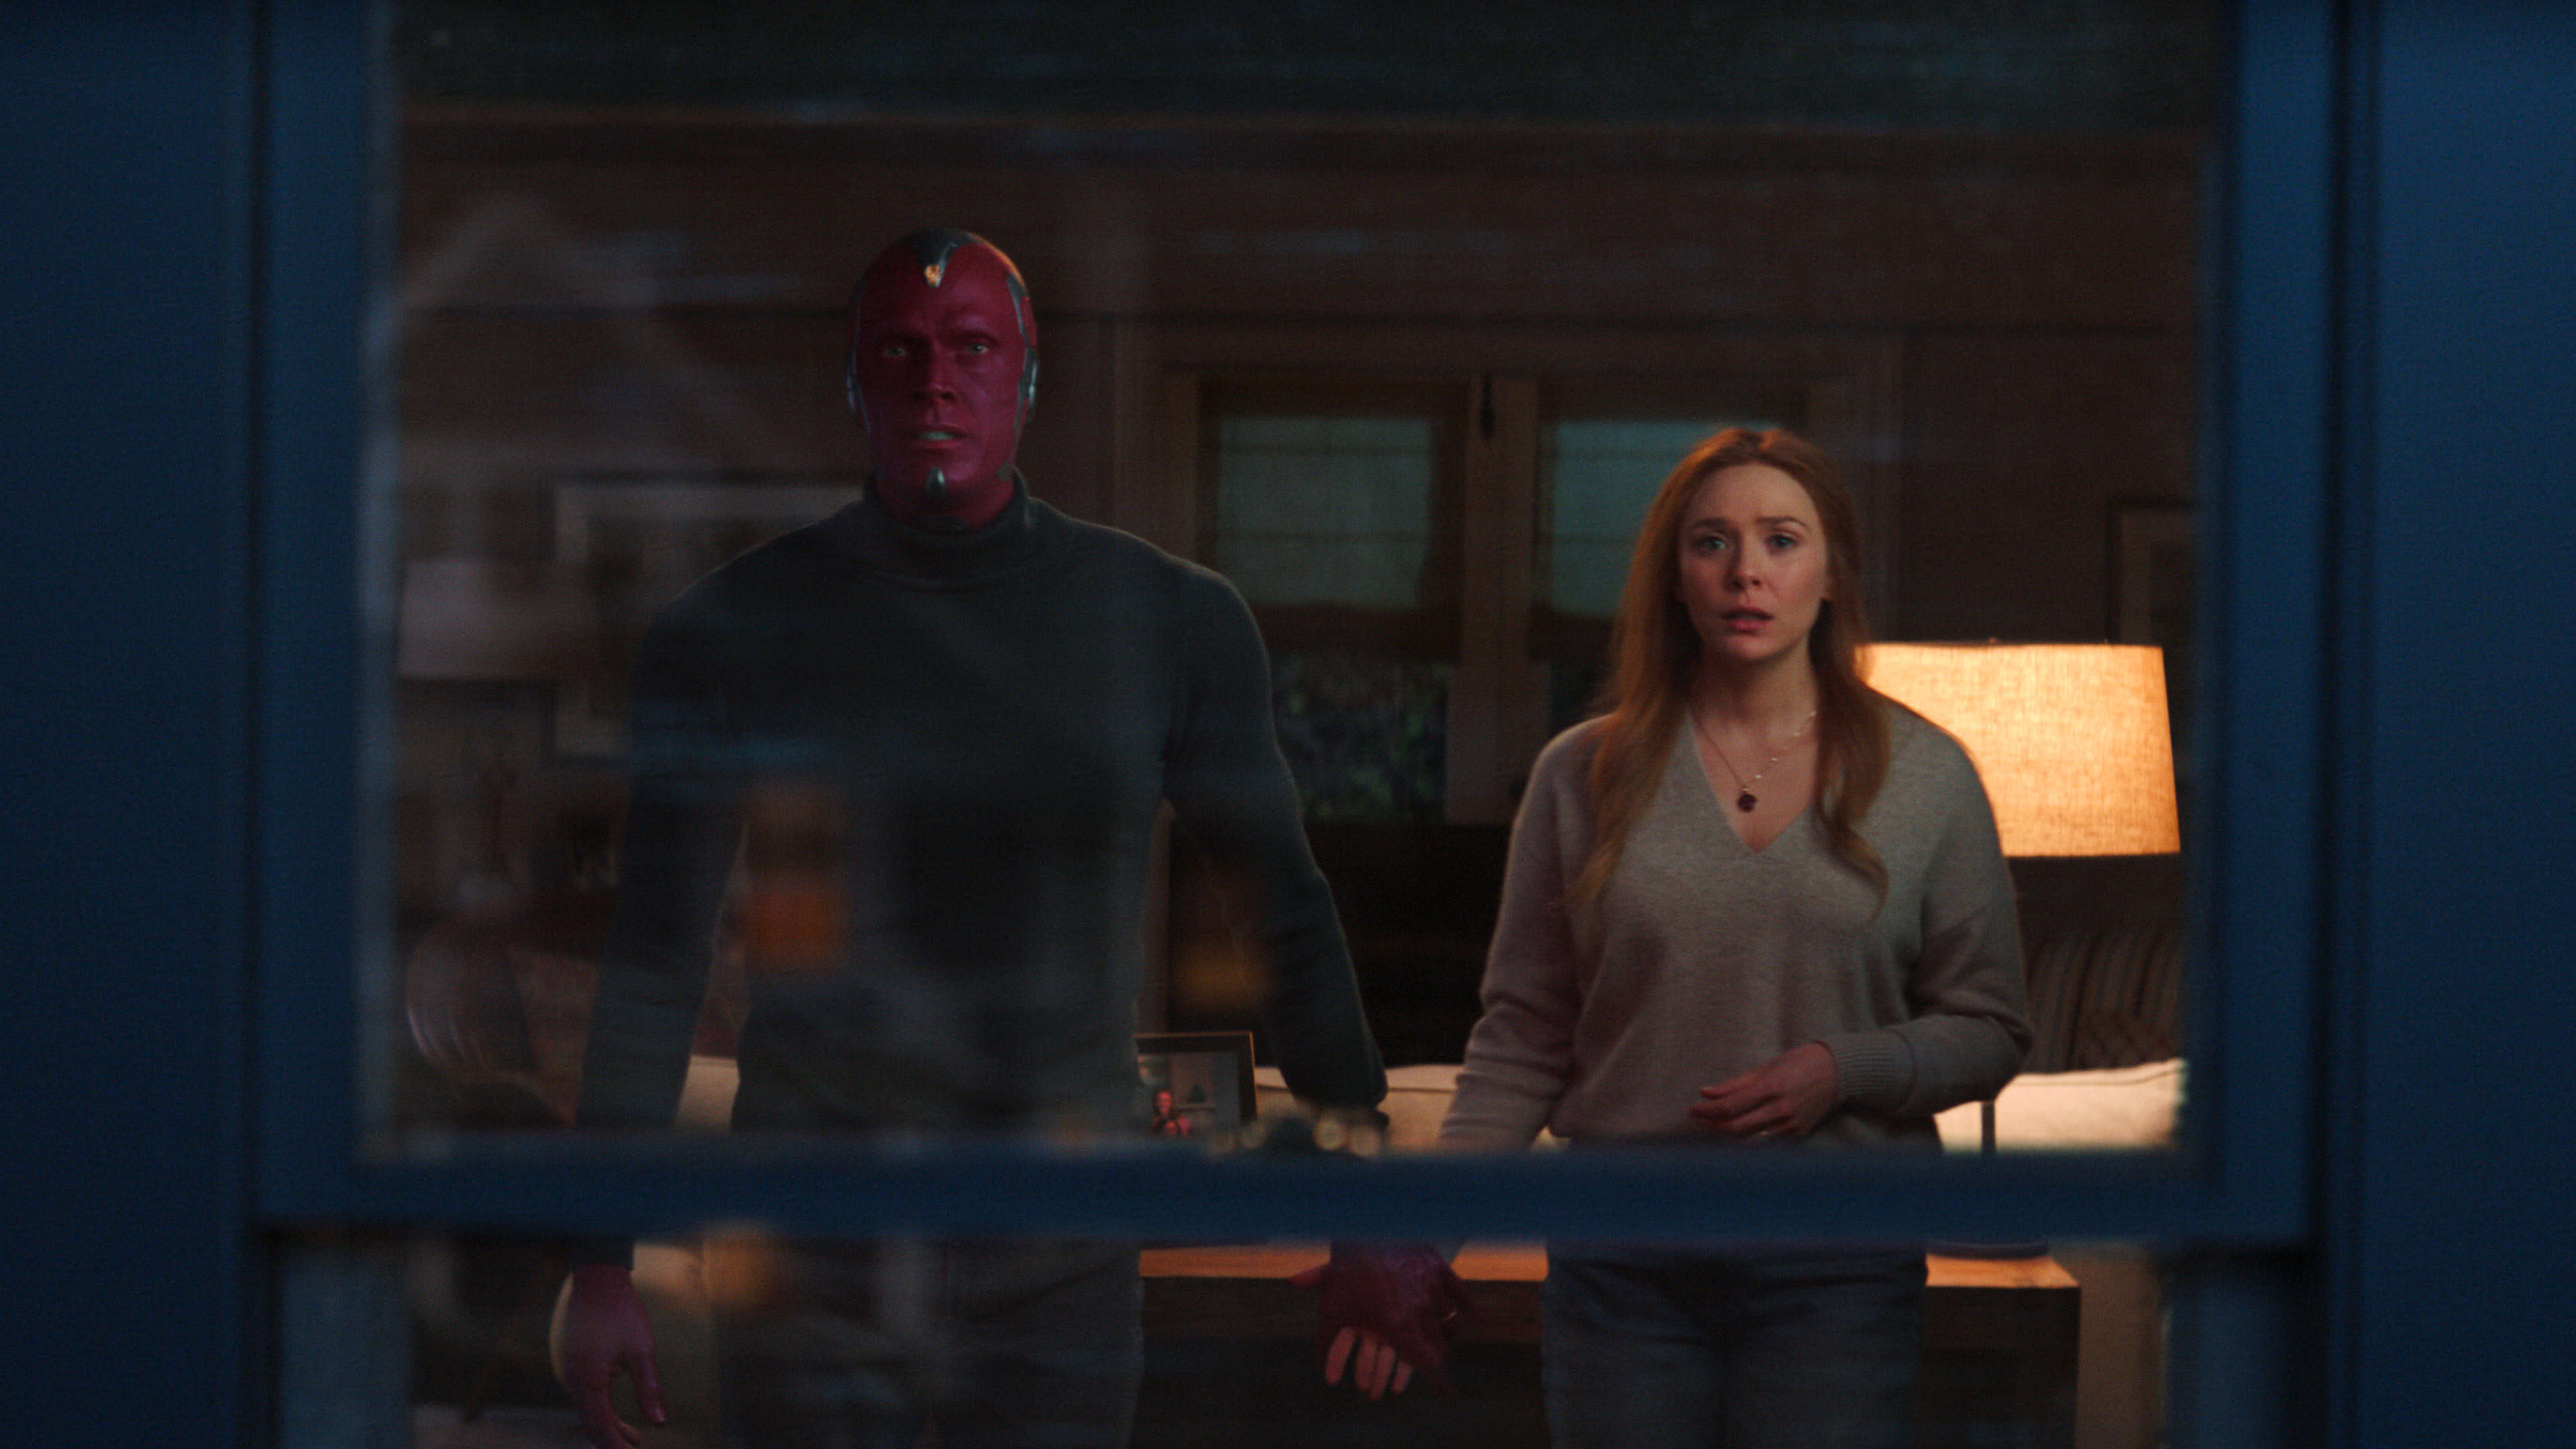 With its Emmy noms, WandaVision delivers unprecedented awards prestige for the MCU